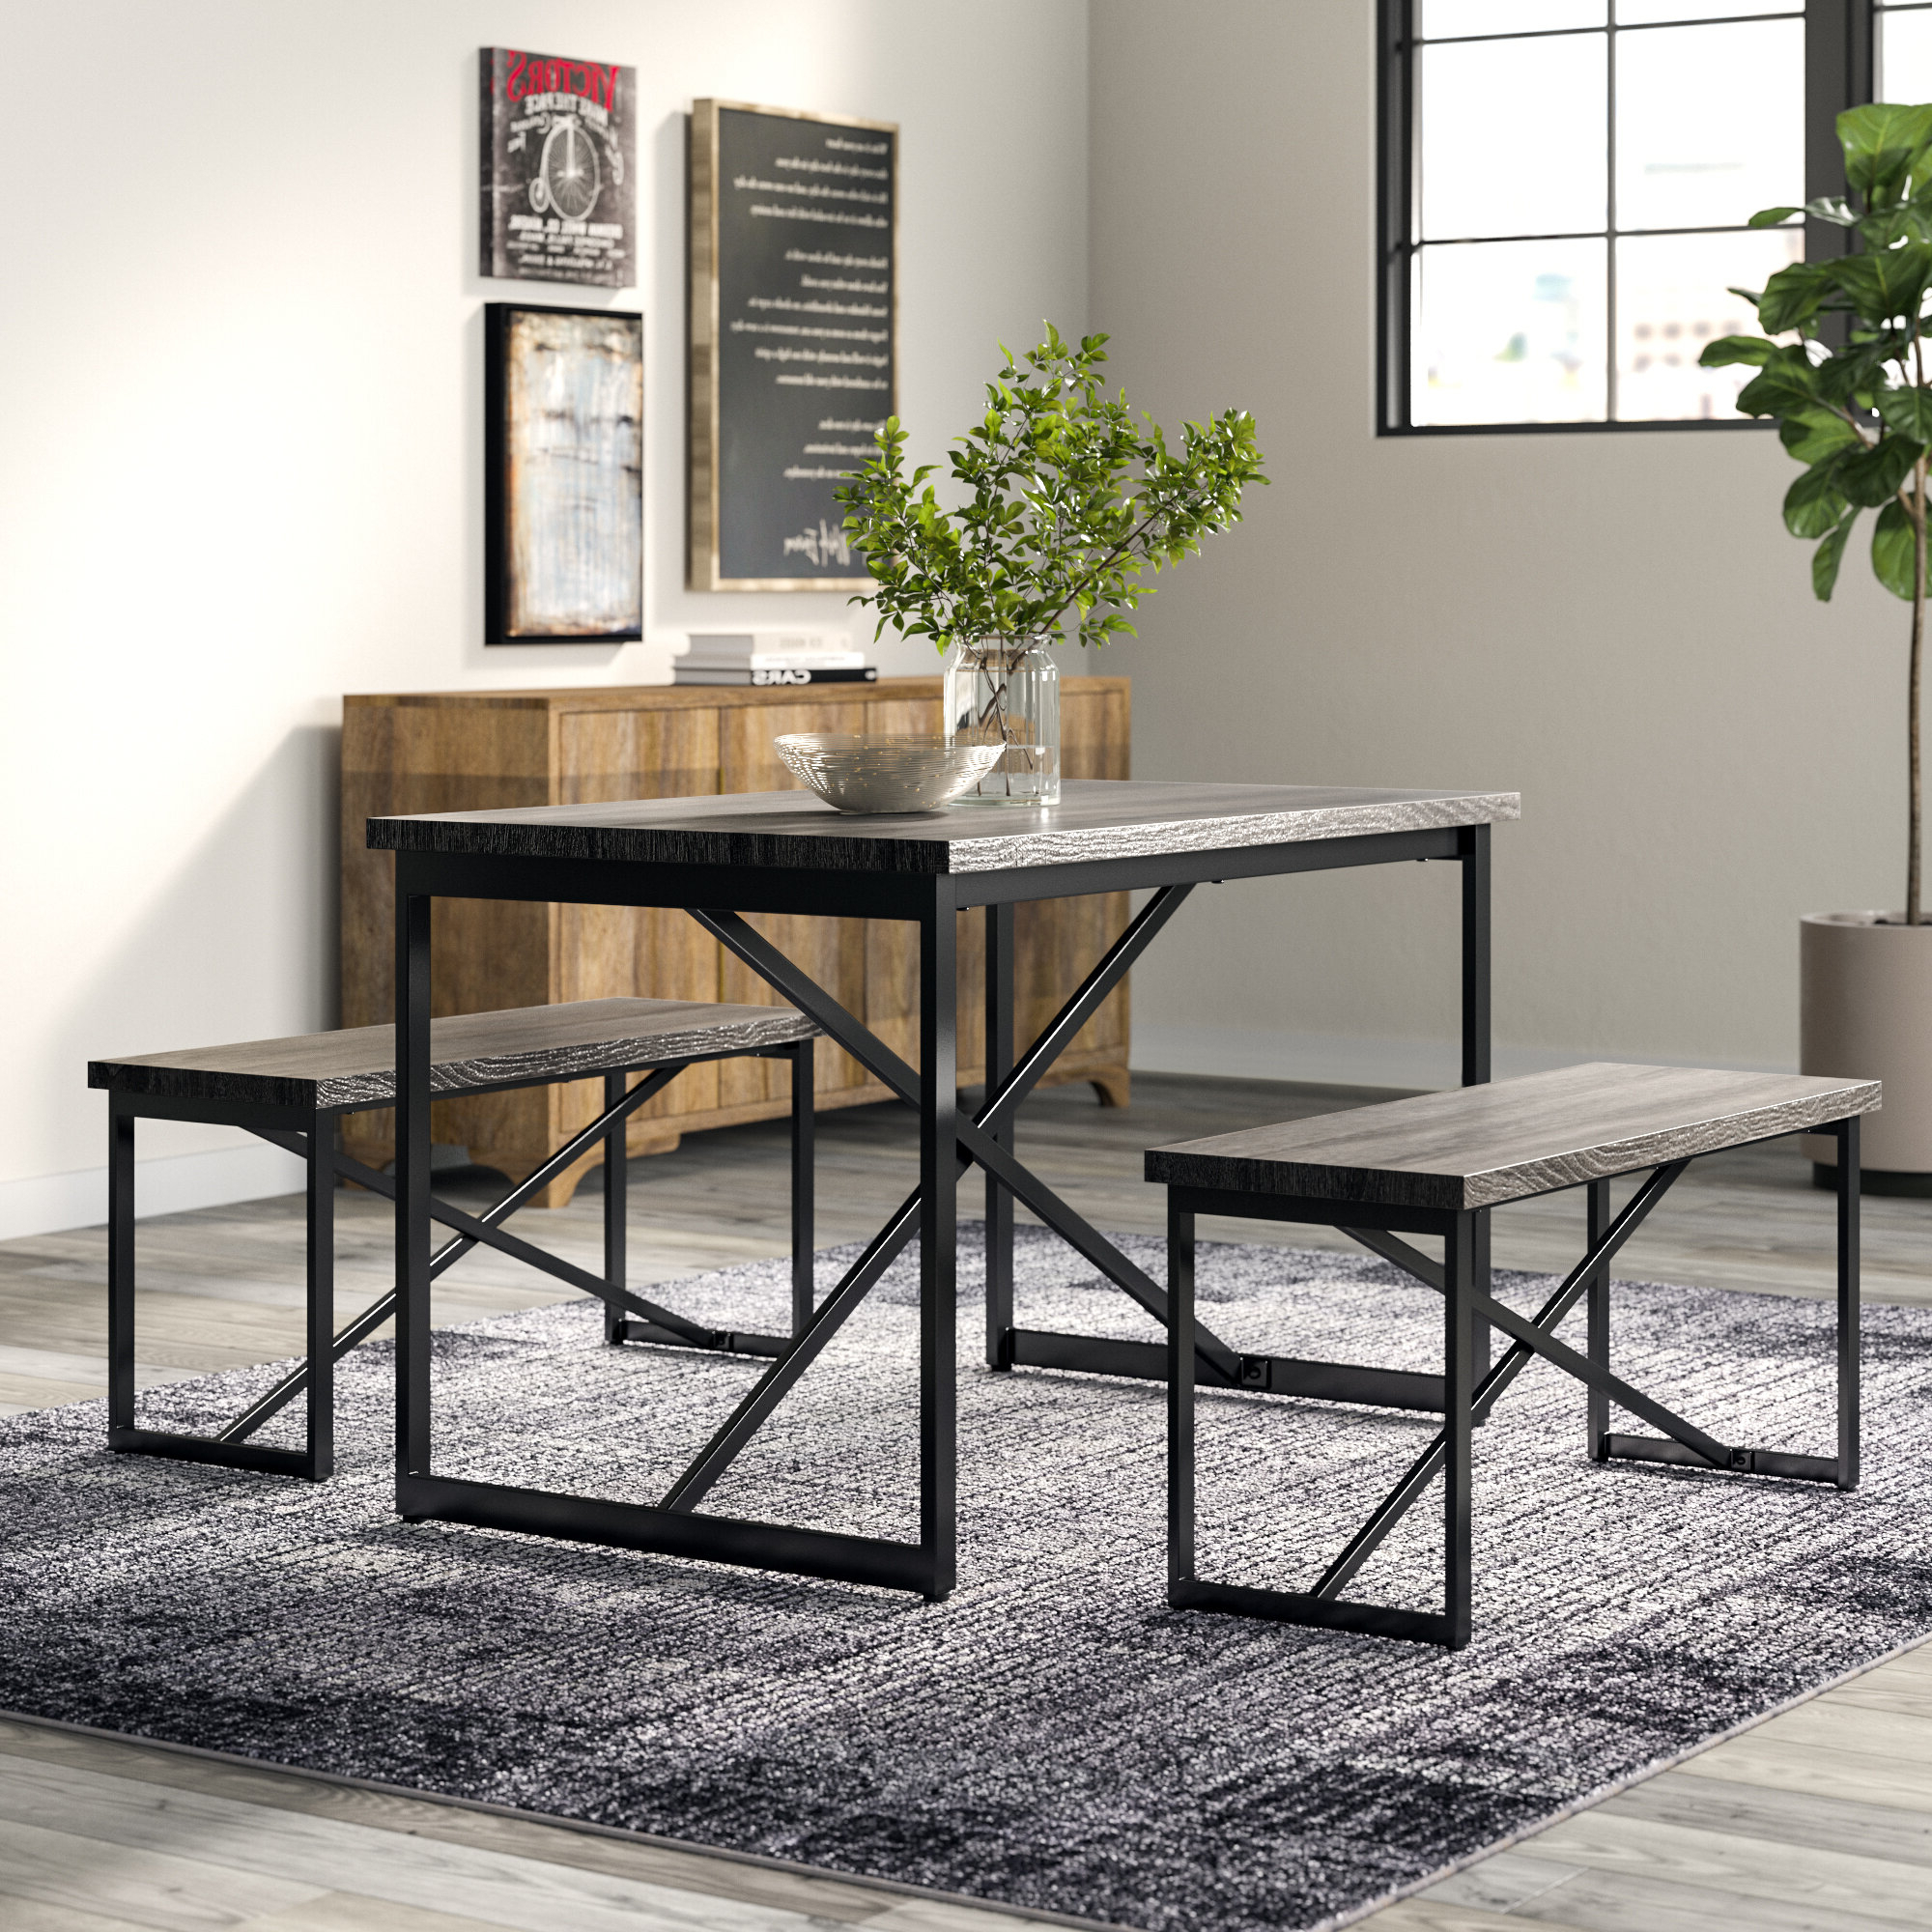 Trendy Bearden 3 Piece Dining Set For Bearden 3 Piece Dining Sets (Gallery 2 of 20)